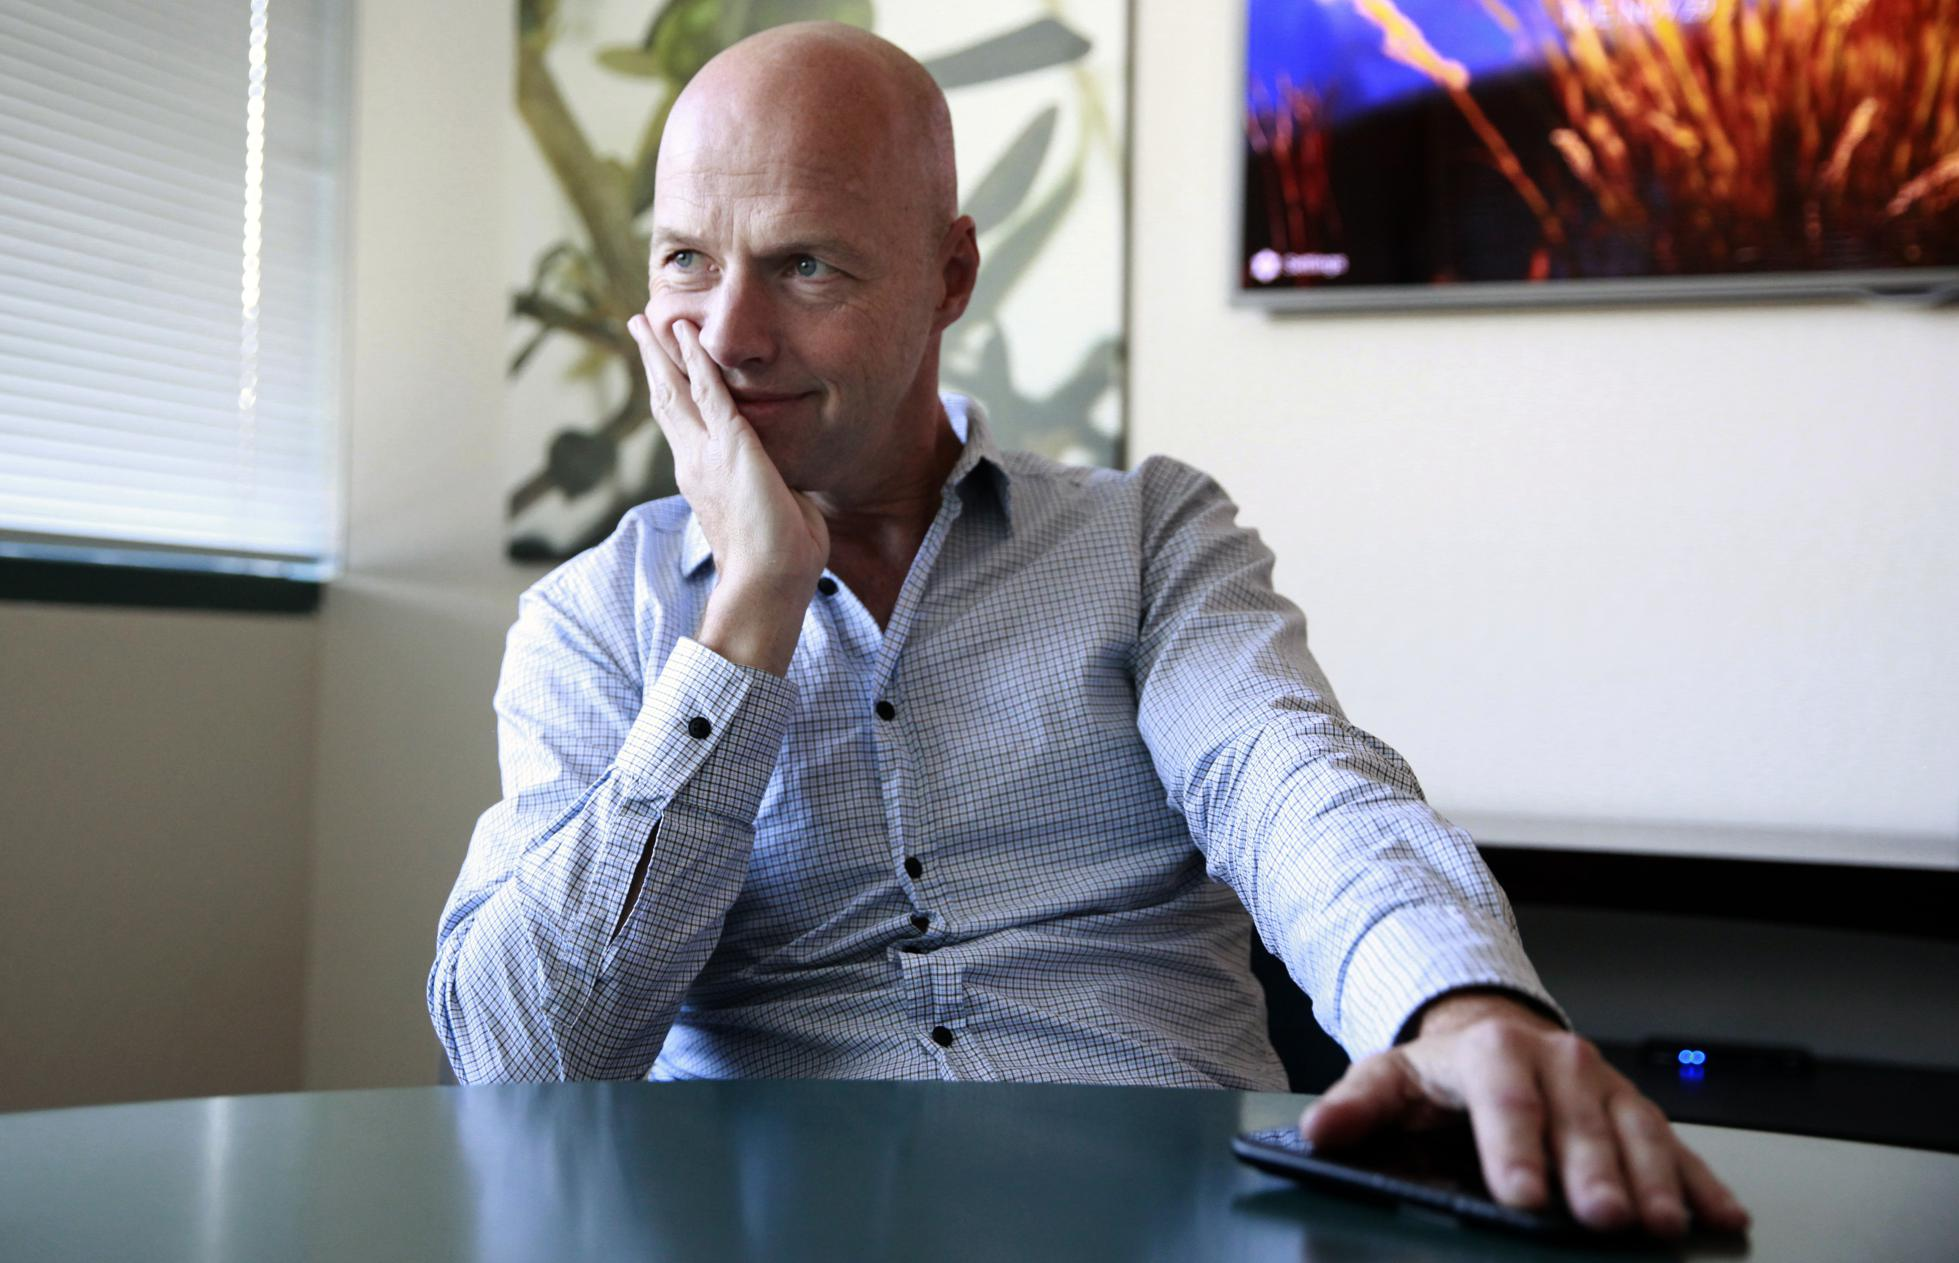 Sebastian Thrun, a pioneer of self-driving technology is the founder of Udacity an online learning company that offers nano degrees to prepare students for technology jobs, is seen at their headquarters in Mountain View,, California on Tuesday November 29